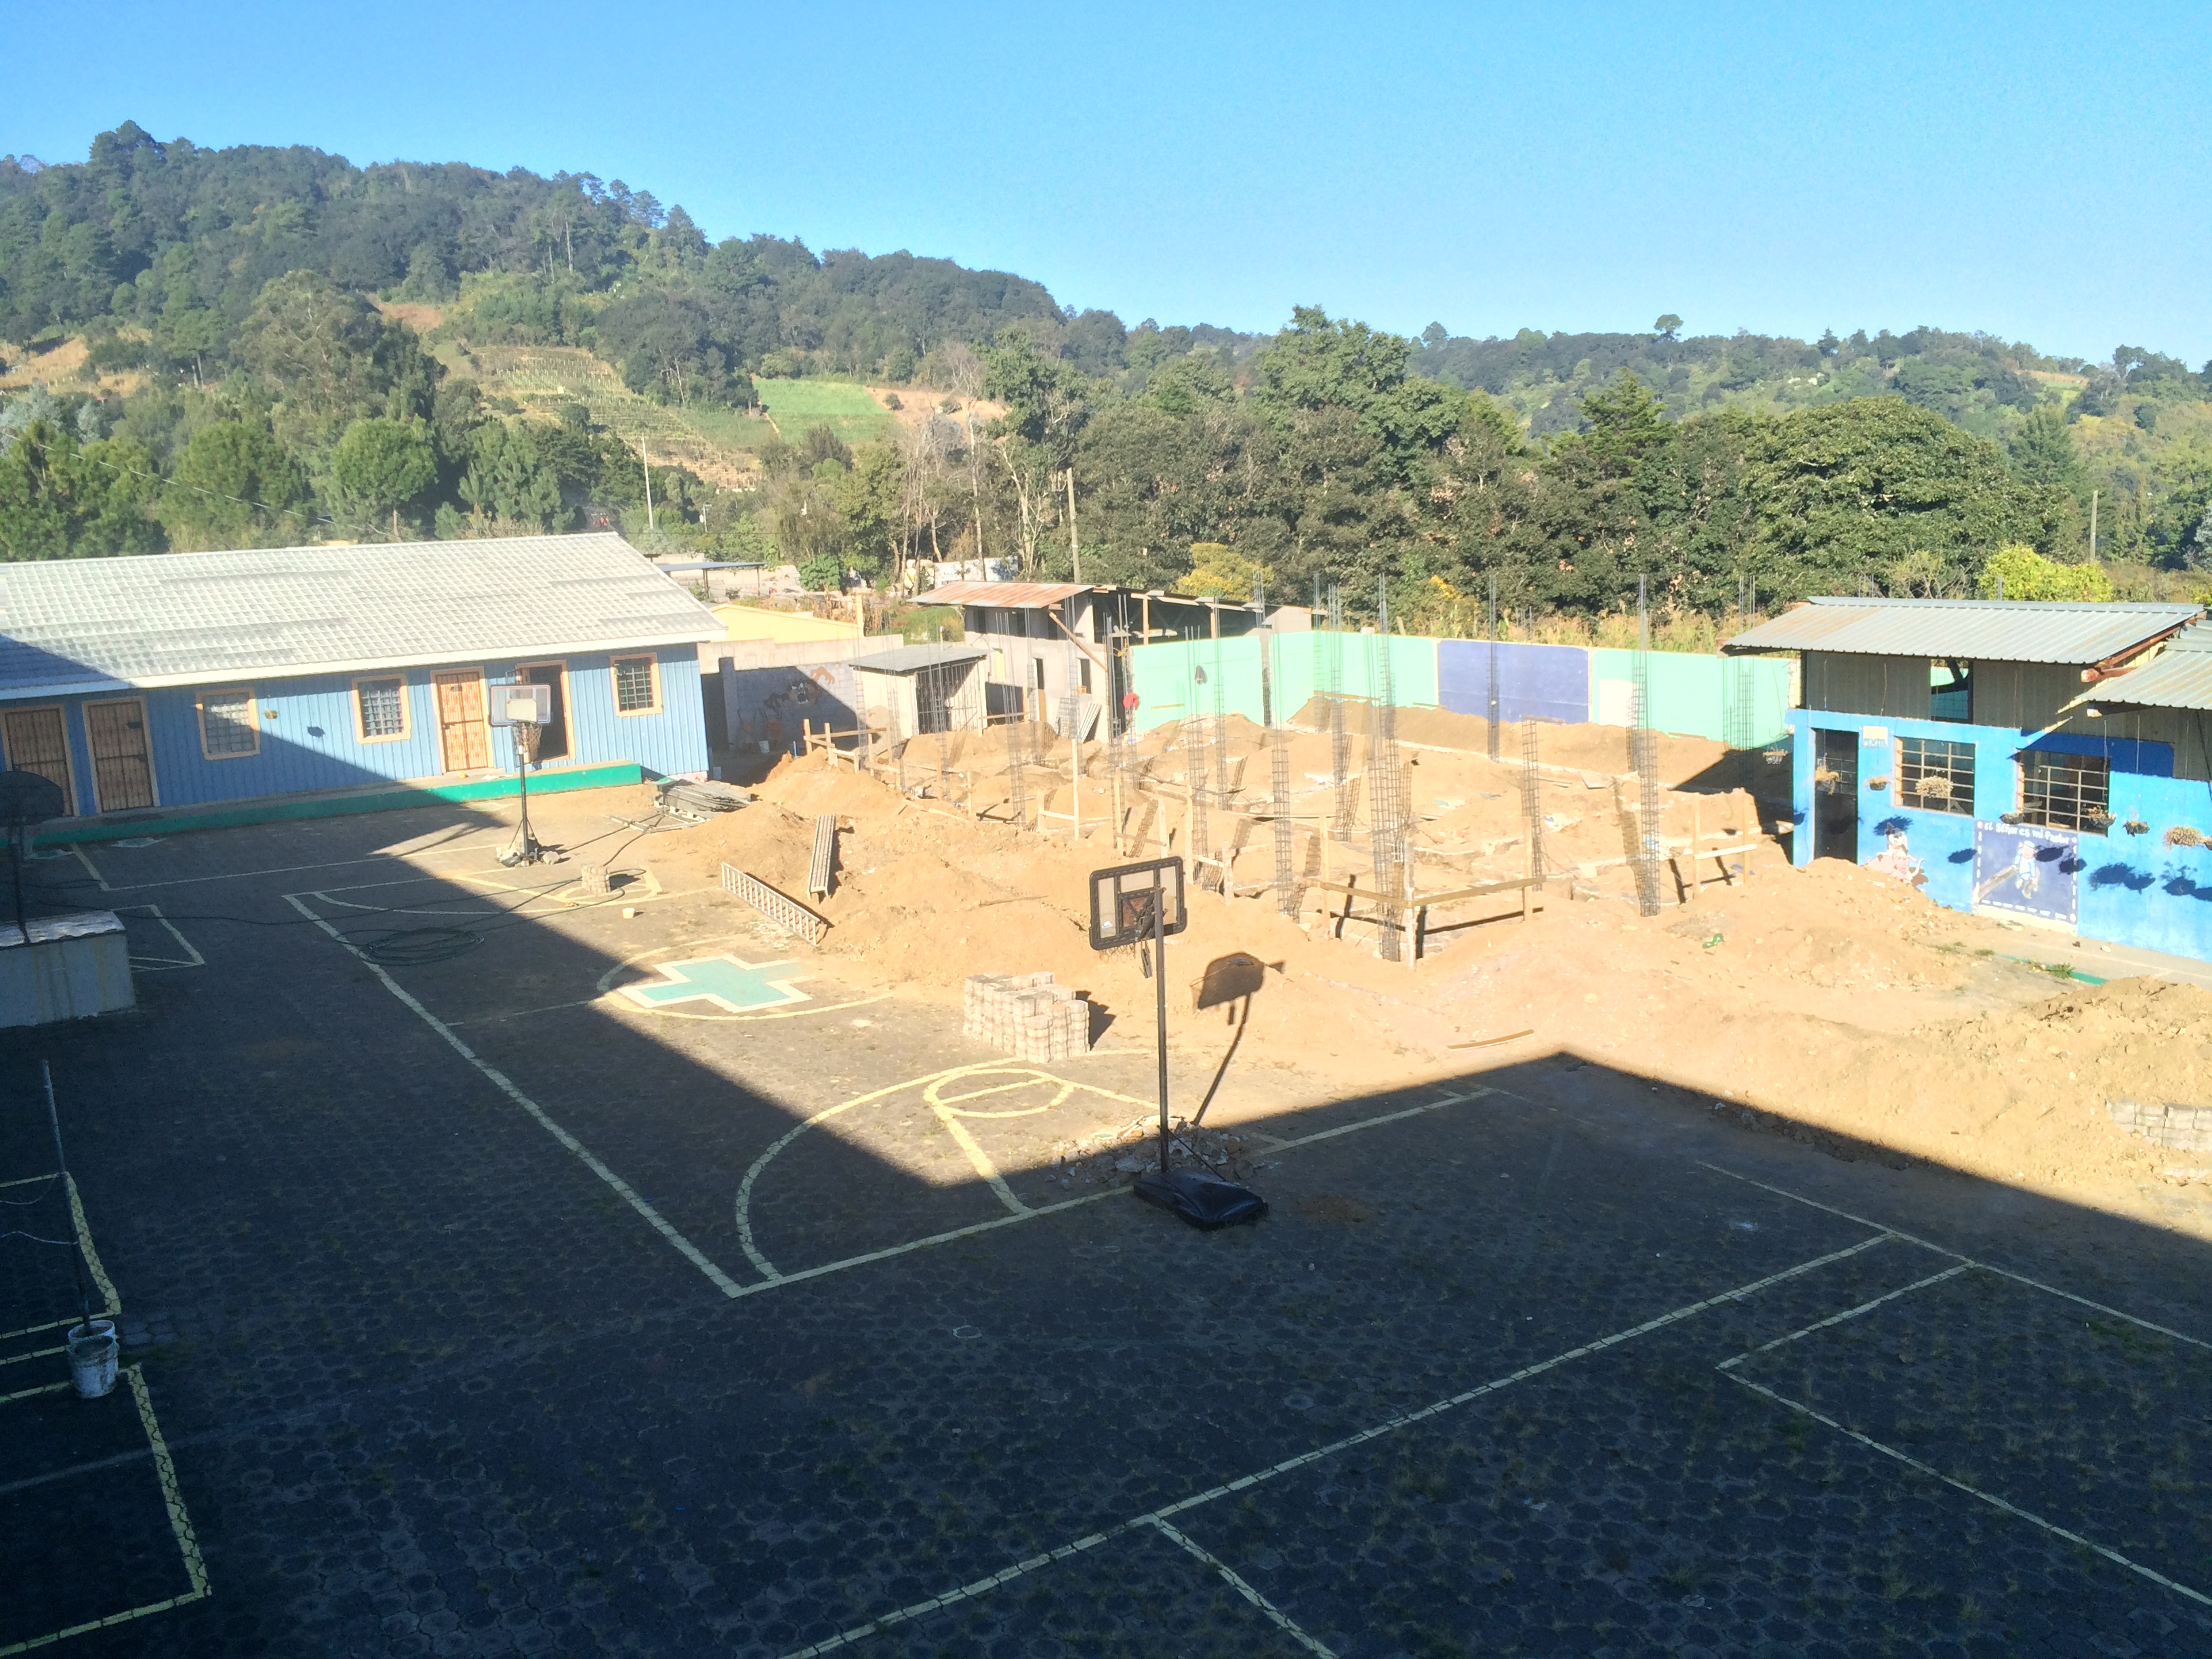 The site of the hospital between the school classes on the right and the school office on the left